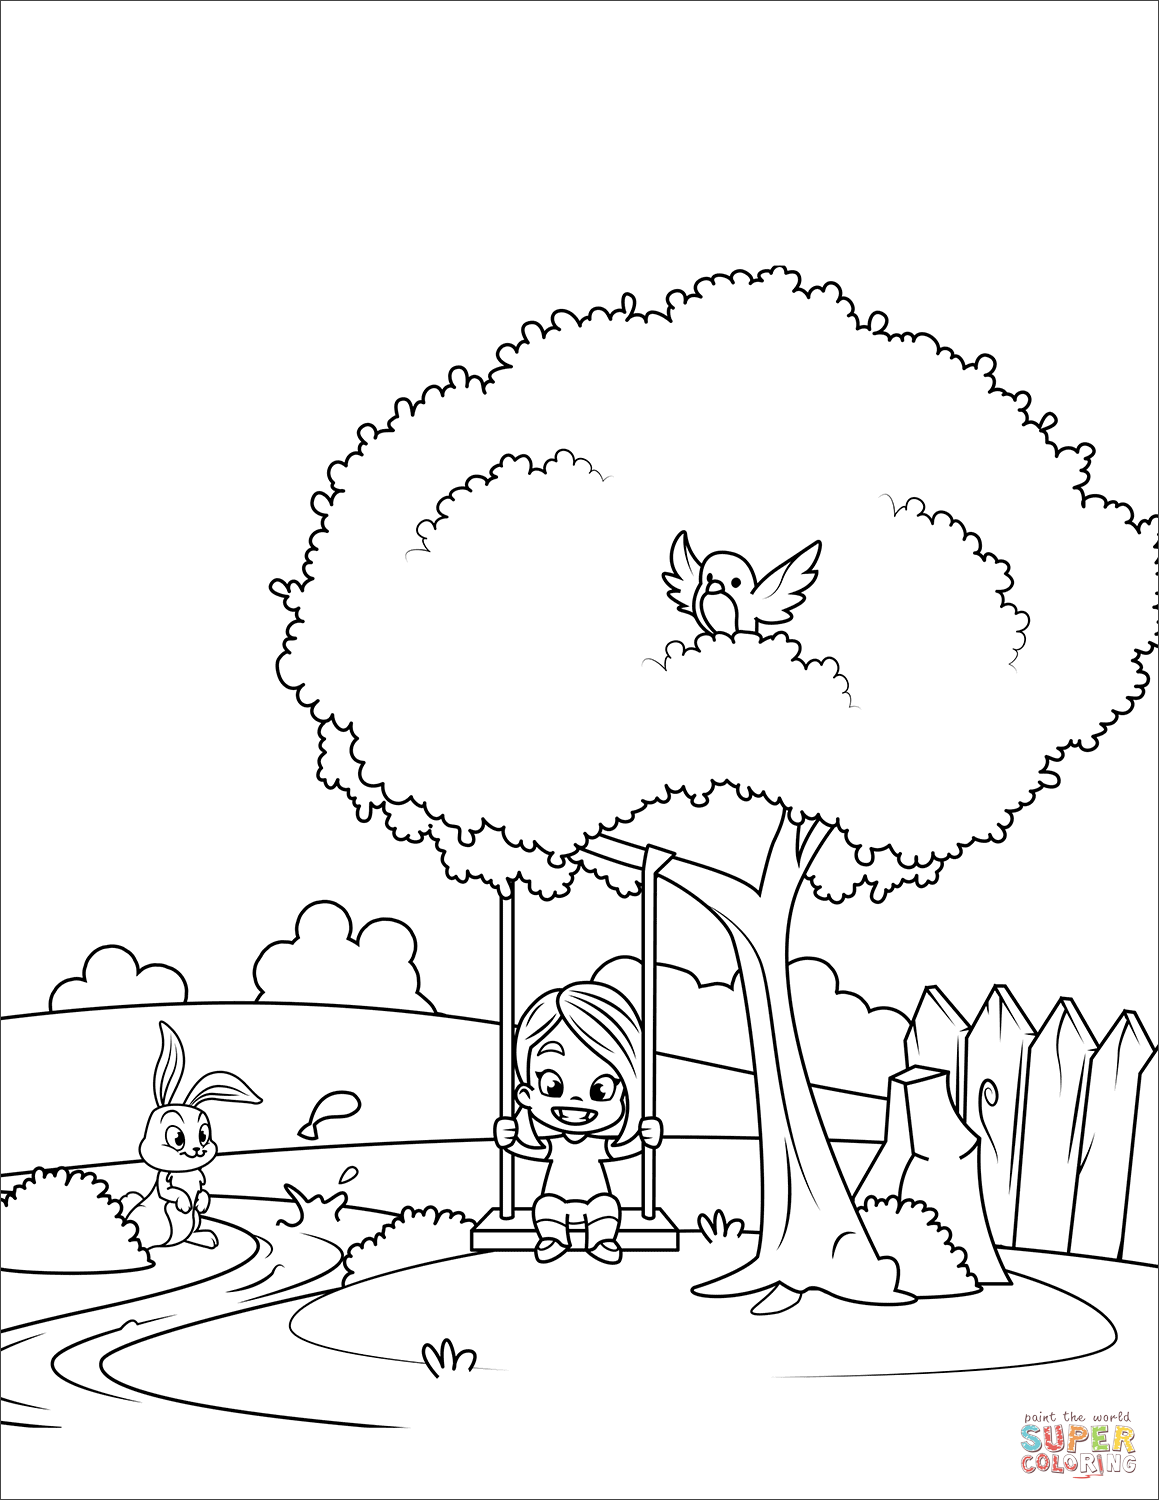 1159x1500 Girl On A Swing Coloring Page Free Printable Coloring Pages